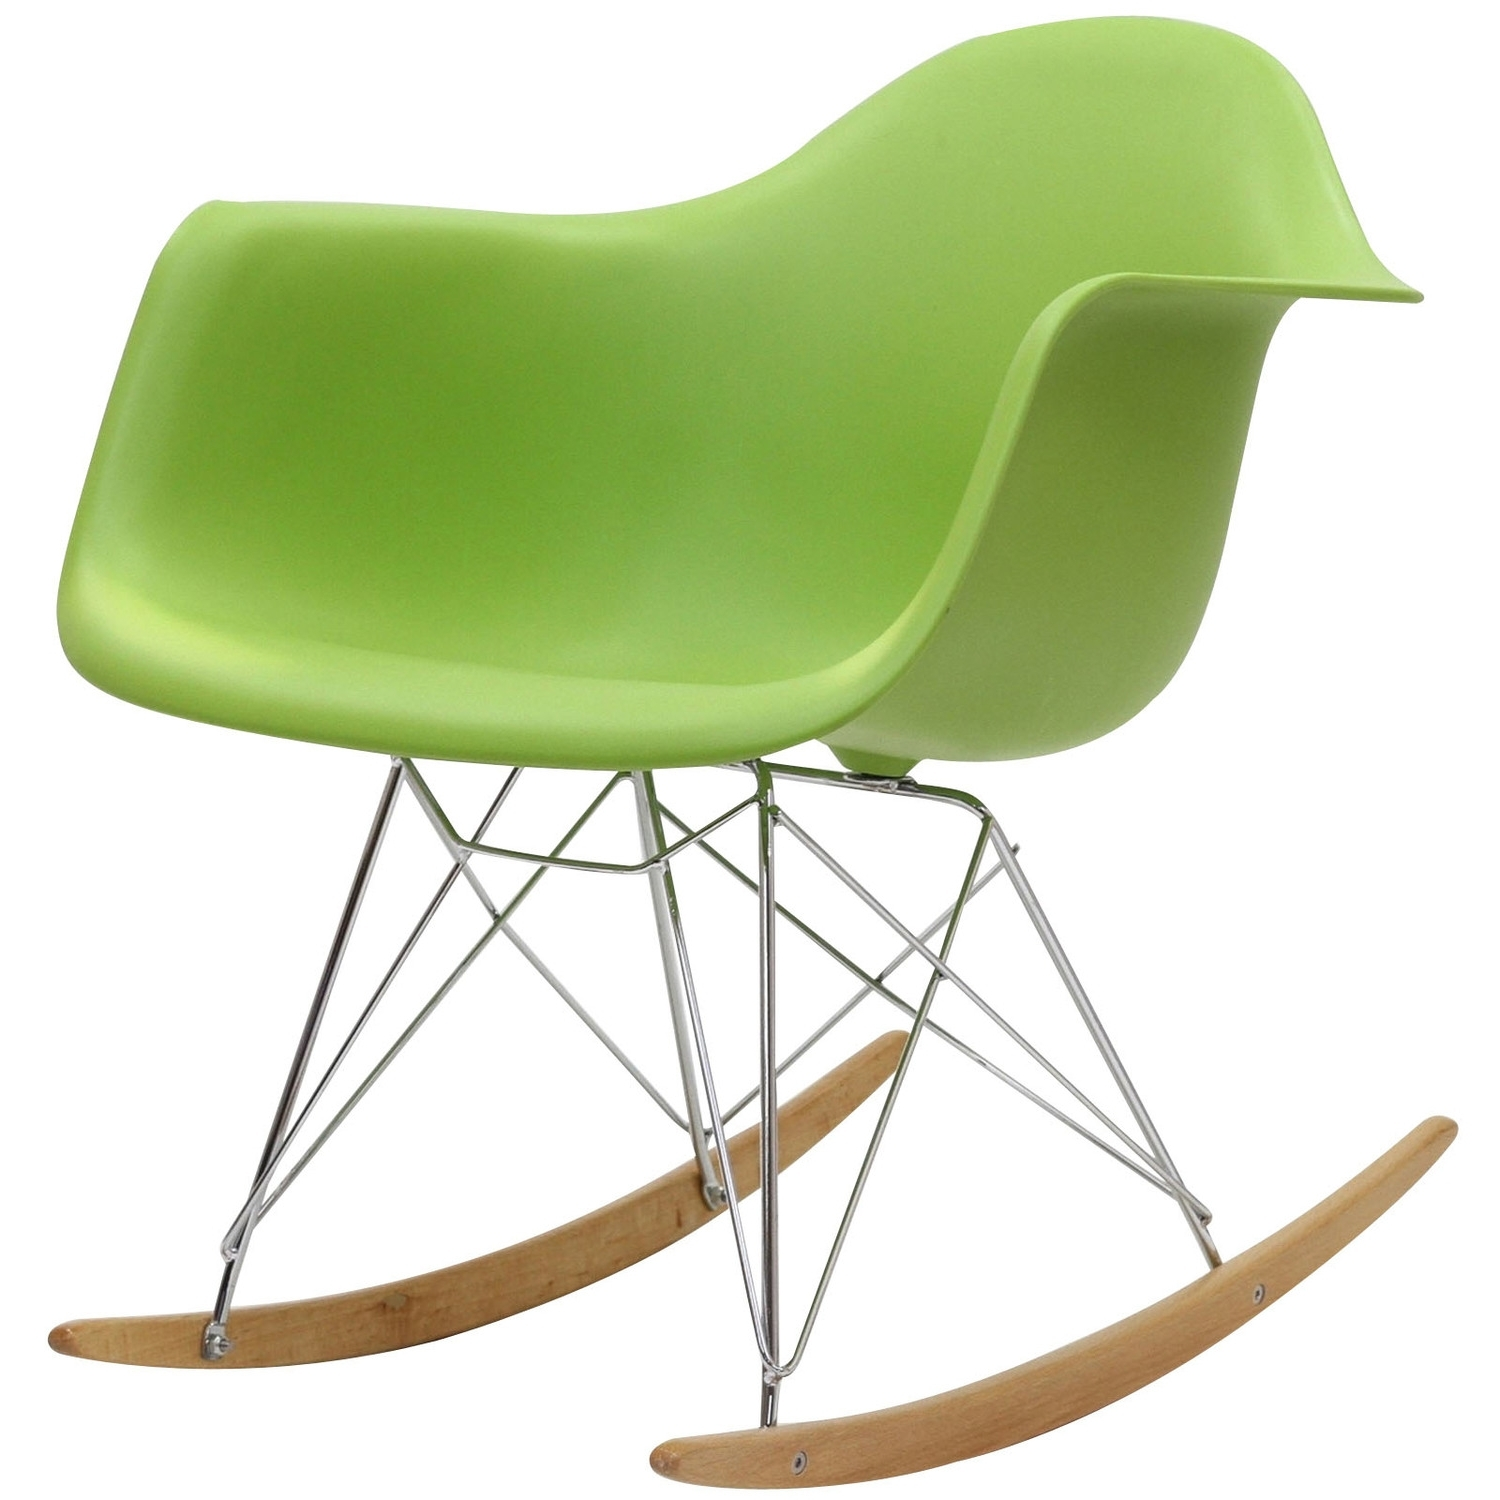 2018 Green Chaises Pertaining To Rocker Green Chaise Eei 147 Modway Furniture Chaises, Lounge (View 7 of 15)